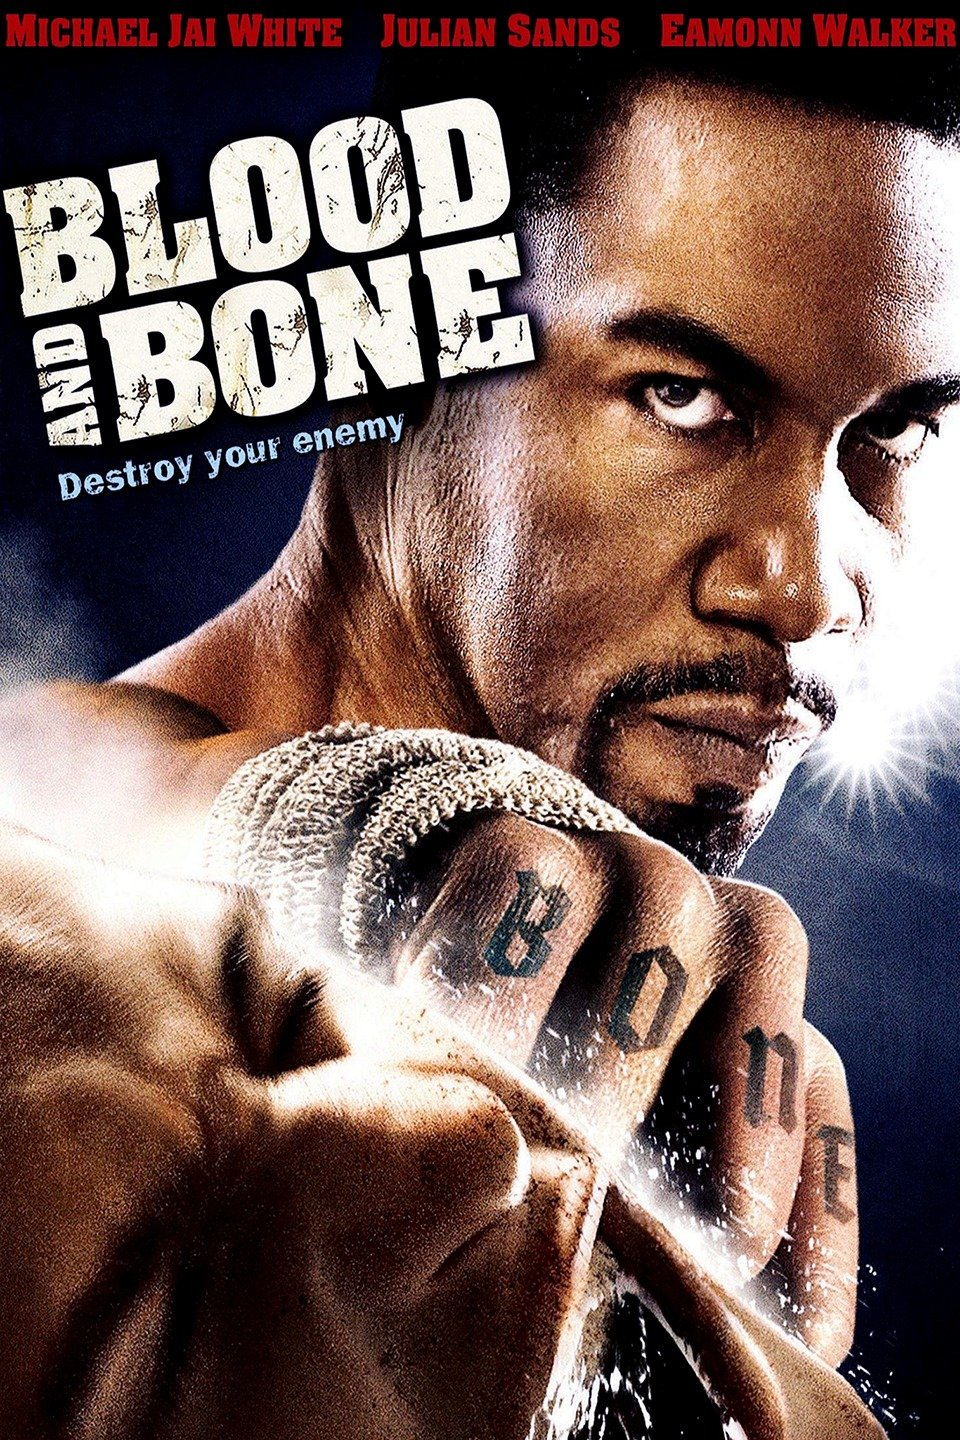 Blood and Bone 2009 full movie free download hd 350mb And 700mb